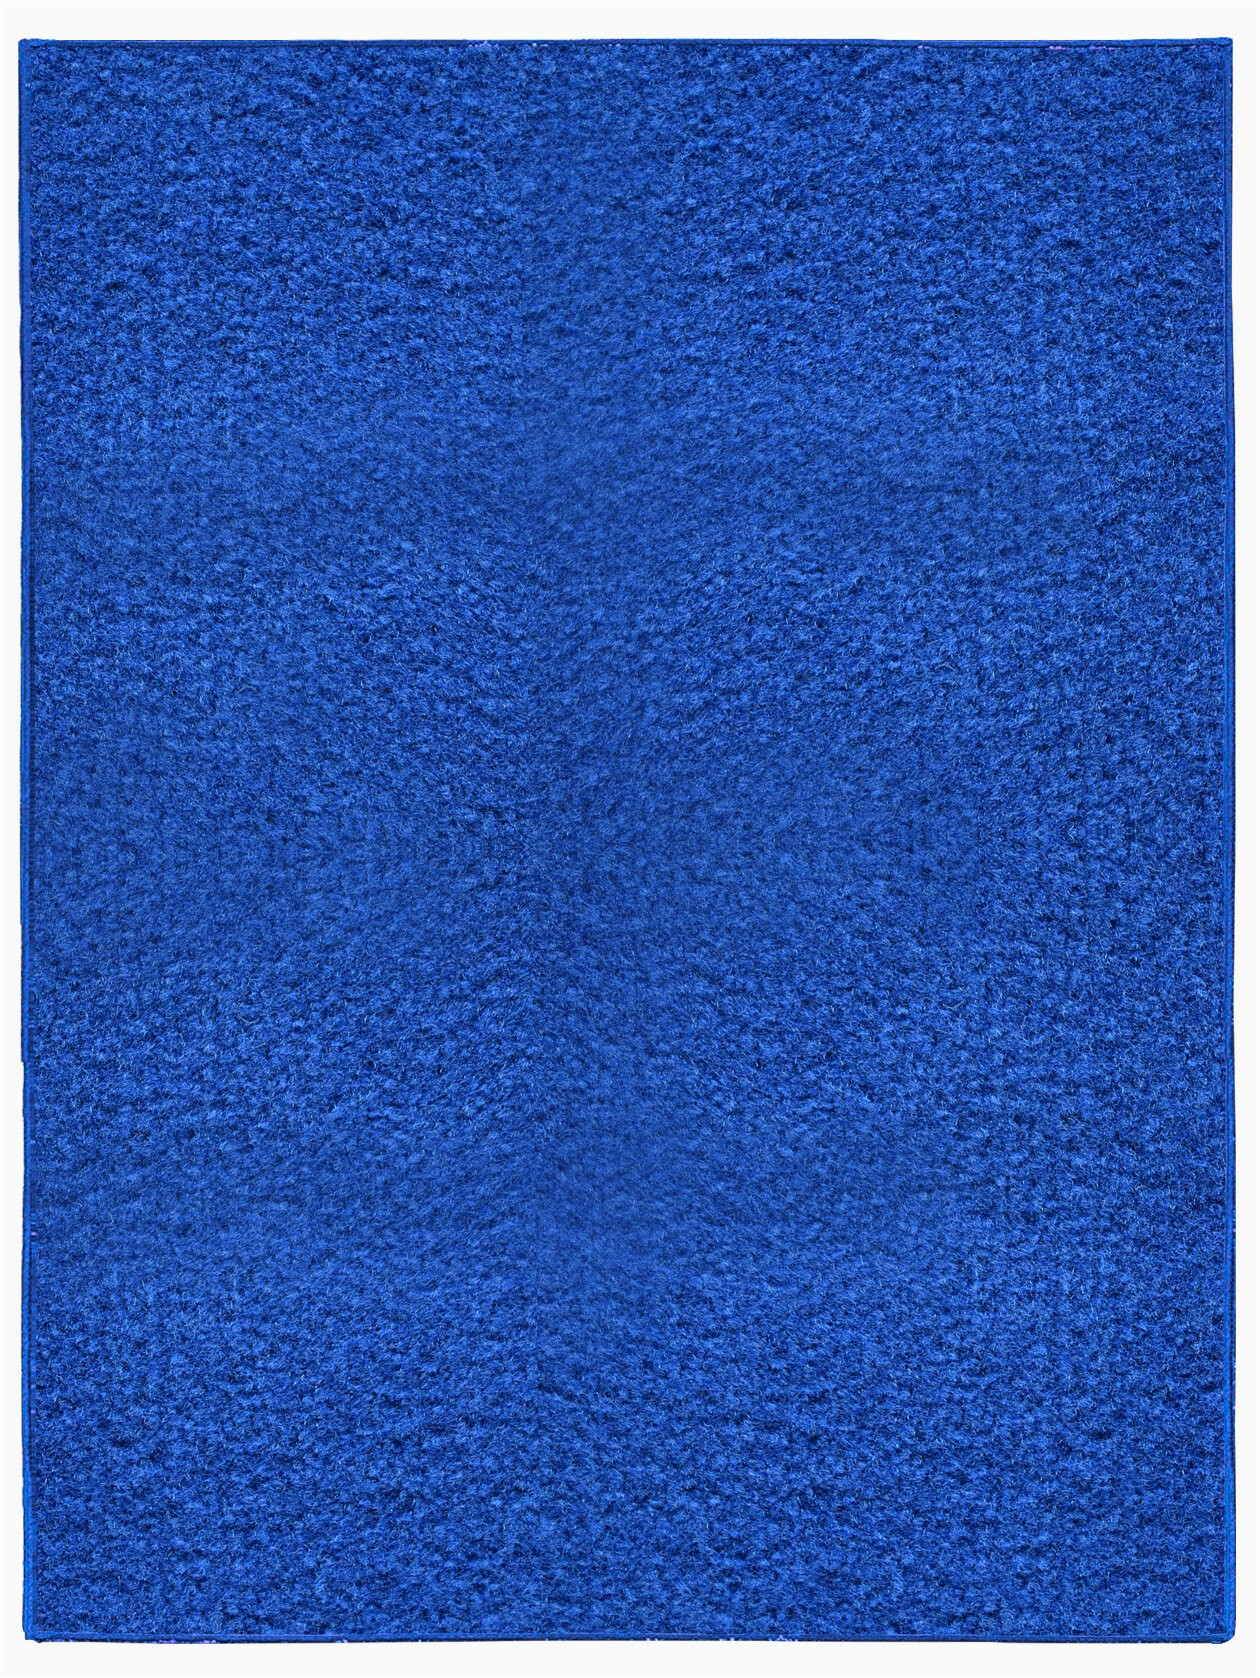 ebern designs galaxy way solid colour area rugs with rubber marine backing for patio porch deck boat basement or garage with premium bound polyester edges blue half round 36 x 72 c piid=